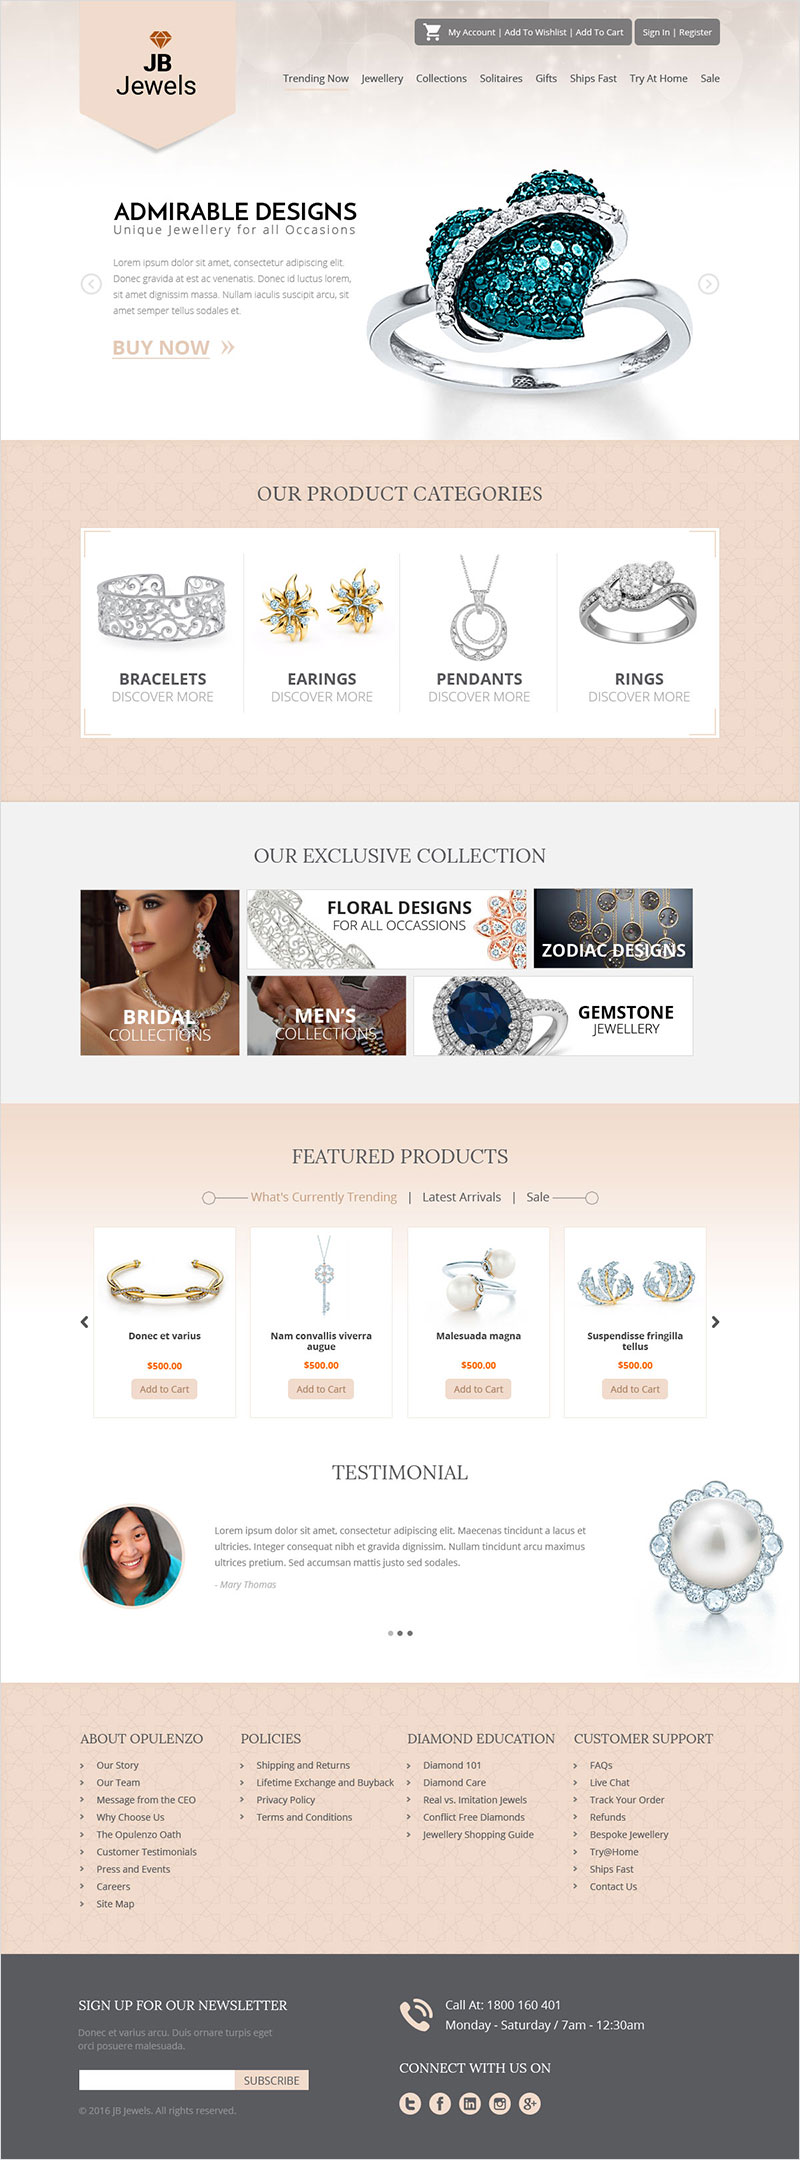 JB Jewels - Website Design